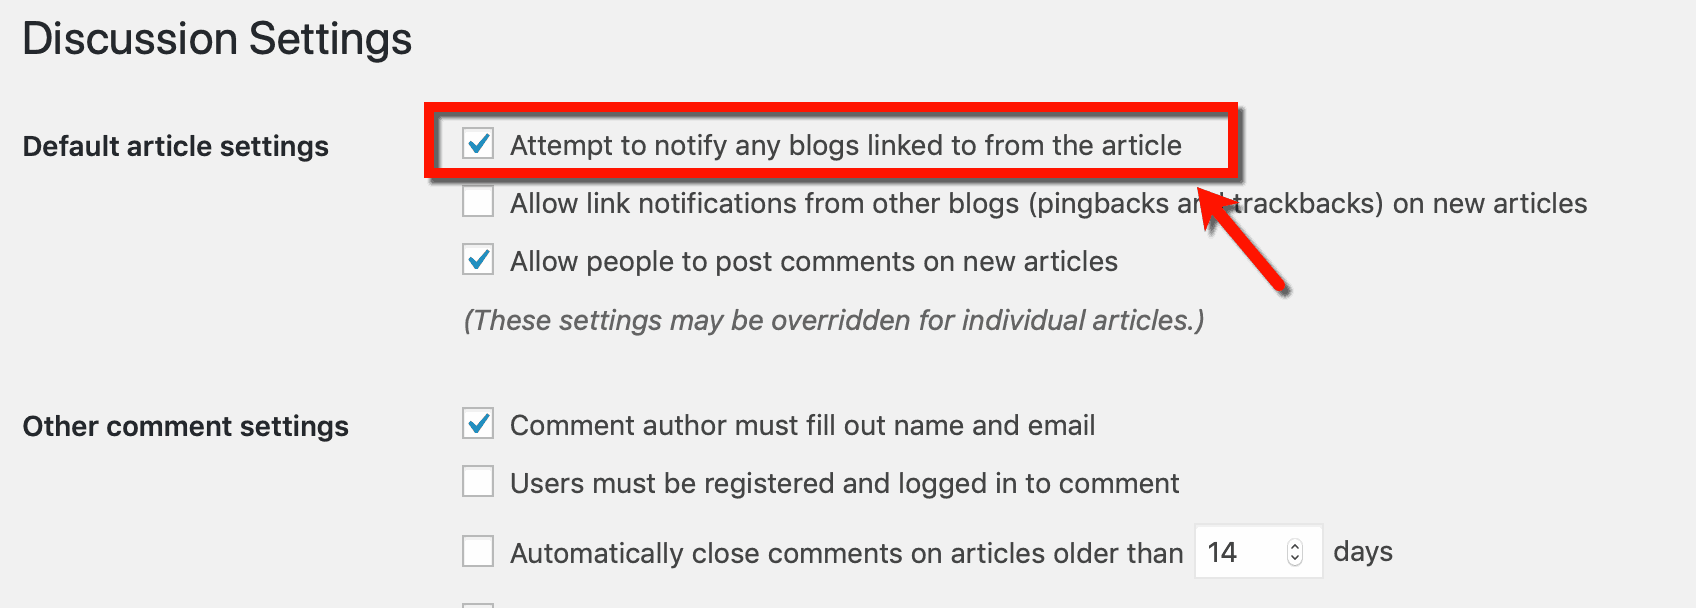 Attempt to notify blogs